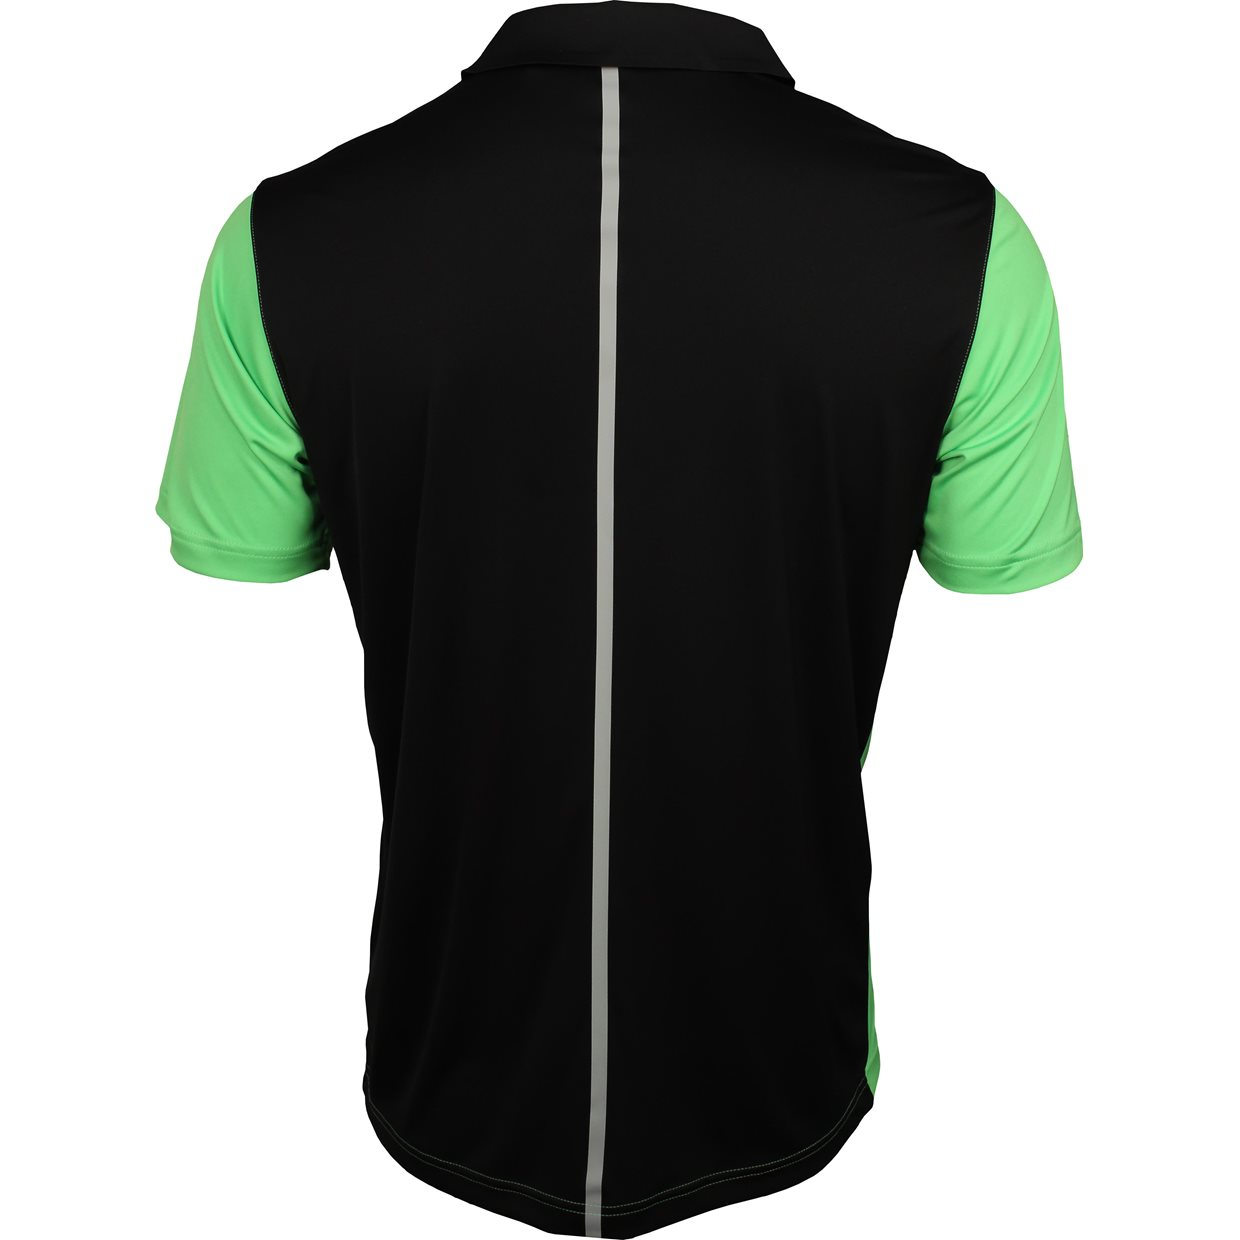 be5110f3 TAP TO ZOOM. Puma Bonded Colorblock Shirt Apparel · Alternate Product Image  View 1 Alternate Product Image View 2 Alternate Product Image View 3 ...